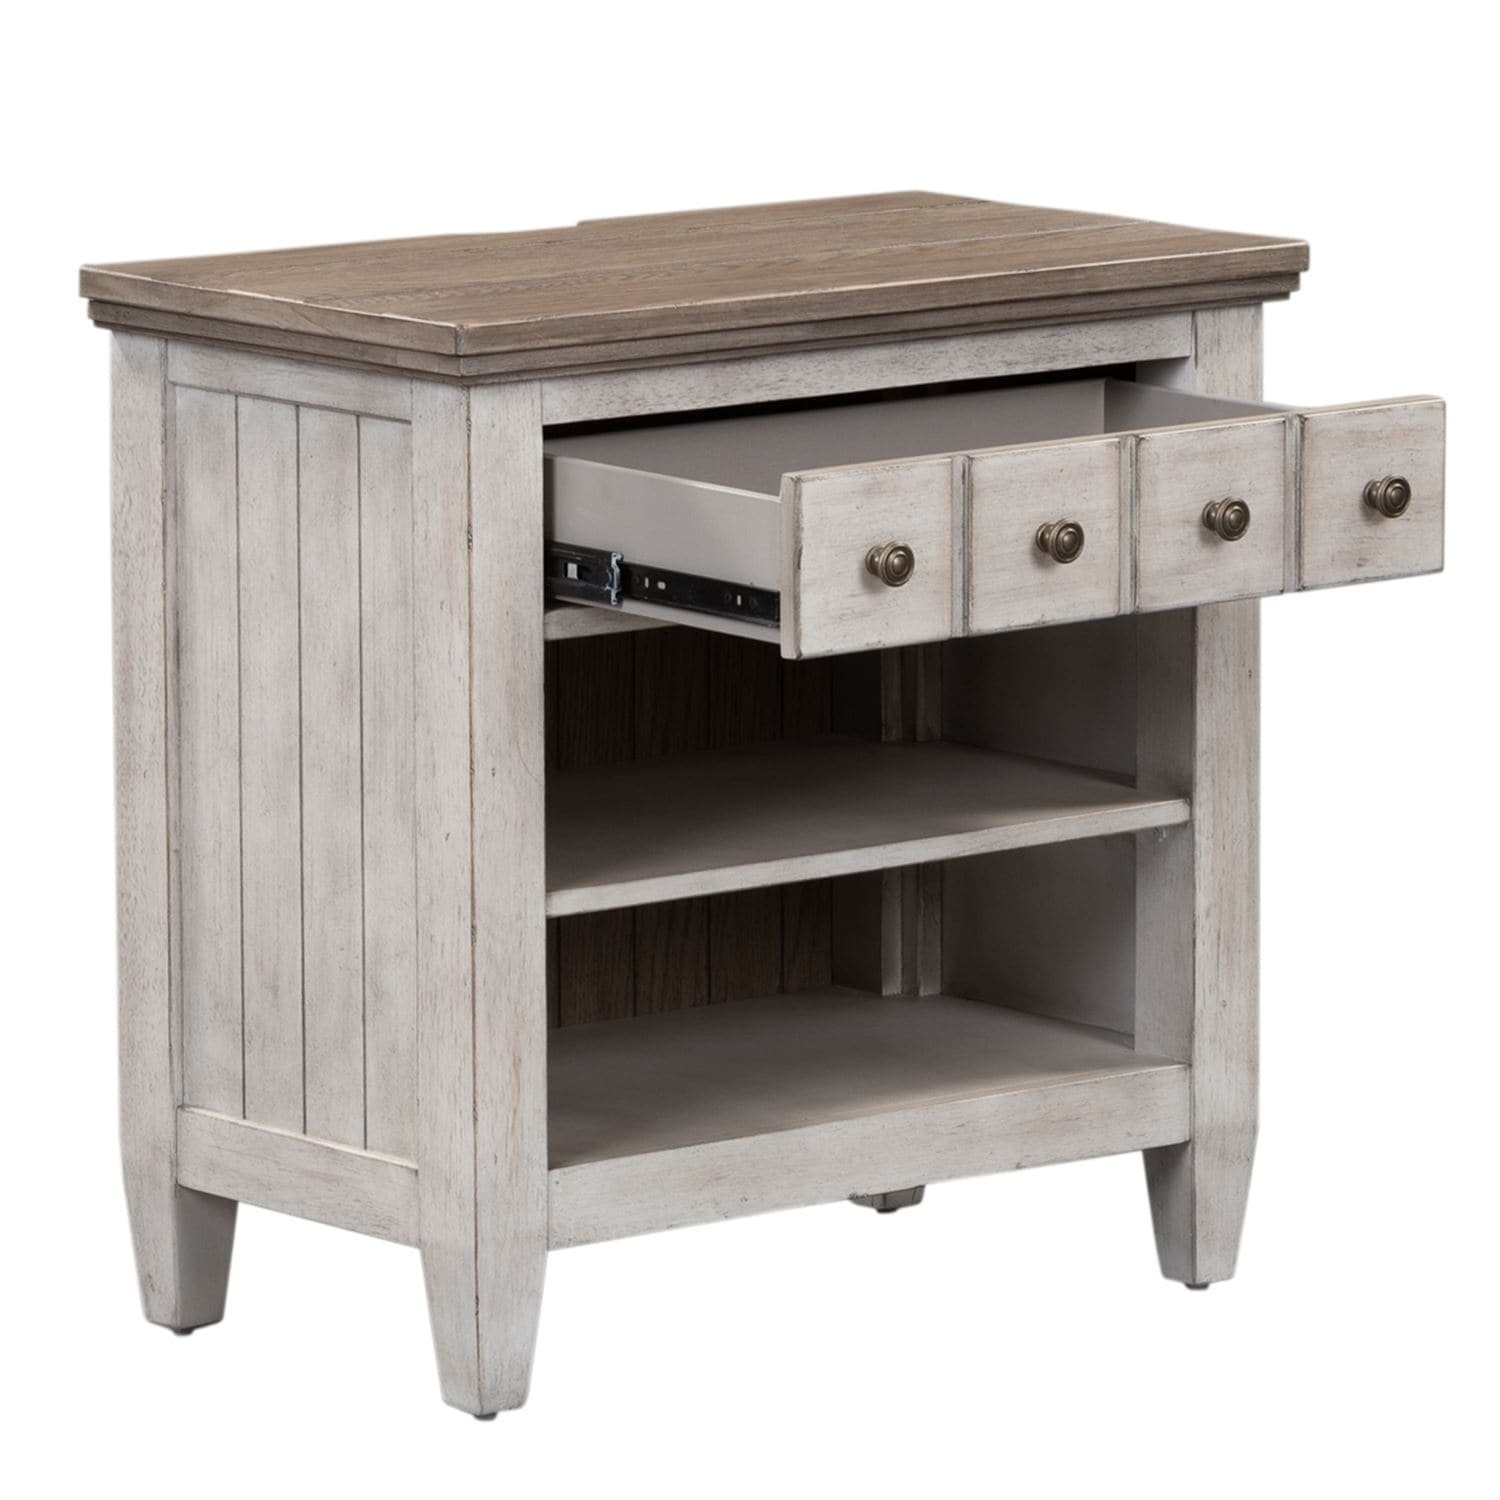 Shop Heartland White 1 Drawer Nightstand With Charging Station